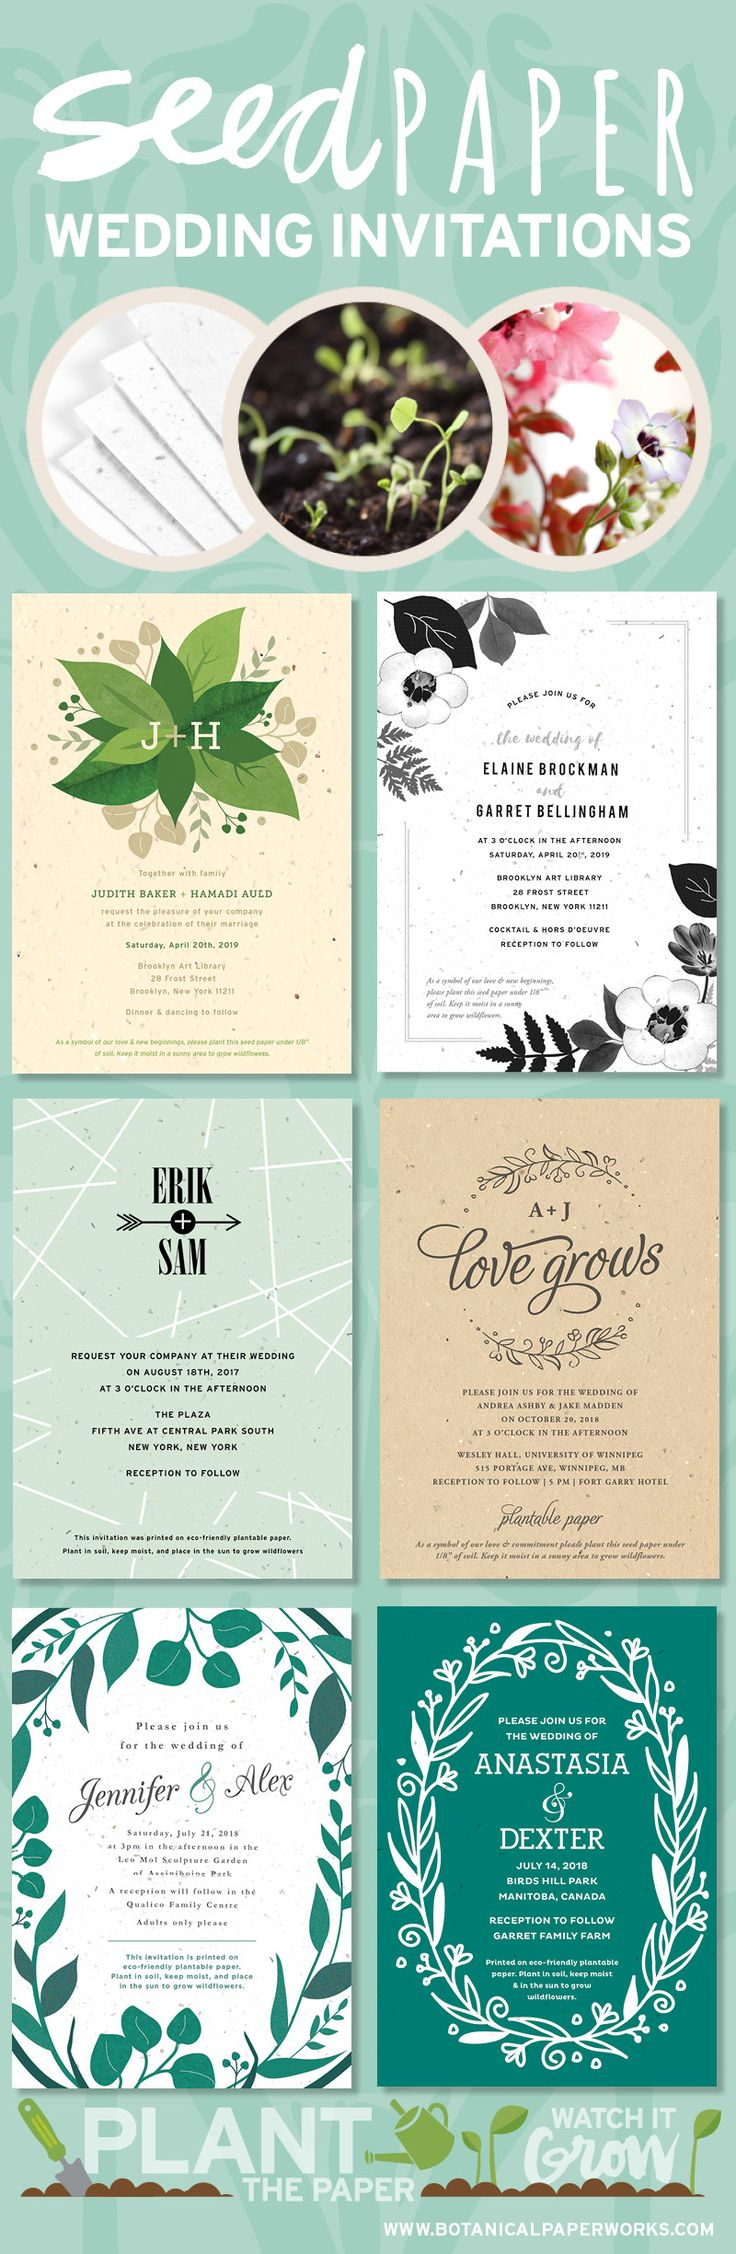 Eco Friendly Weding Invitations 026 - Eco Friendly Weding Invitations